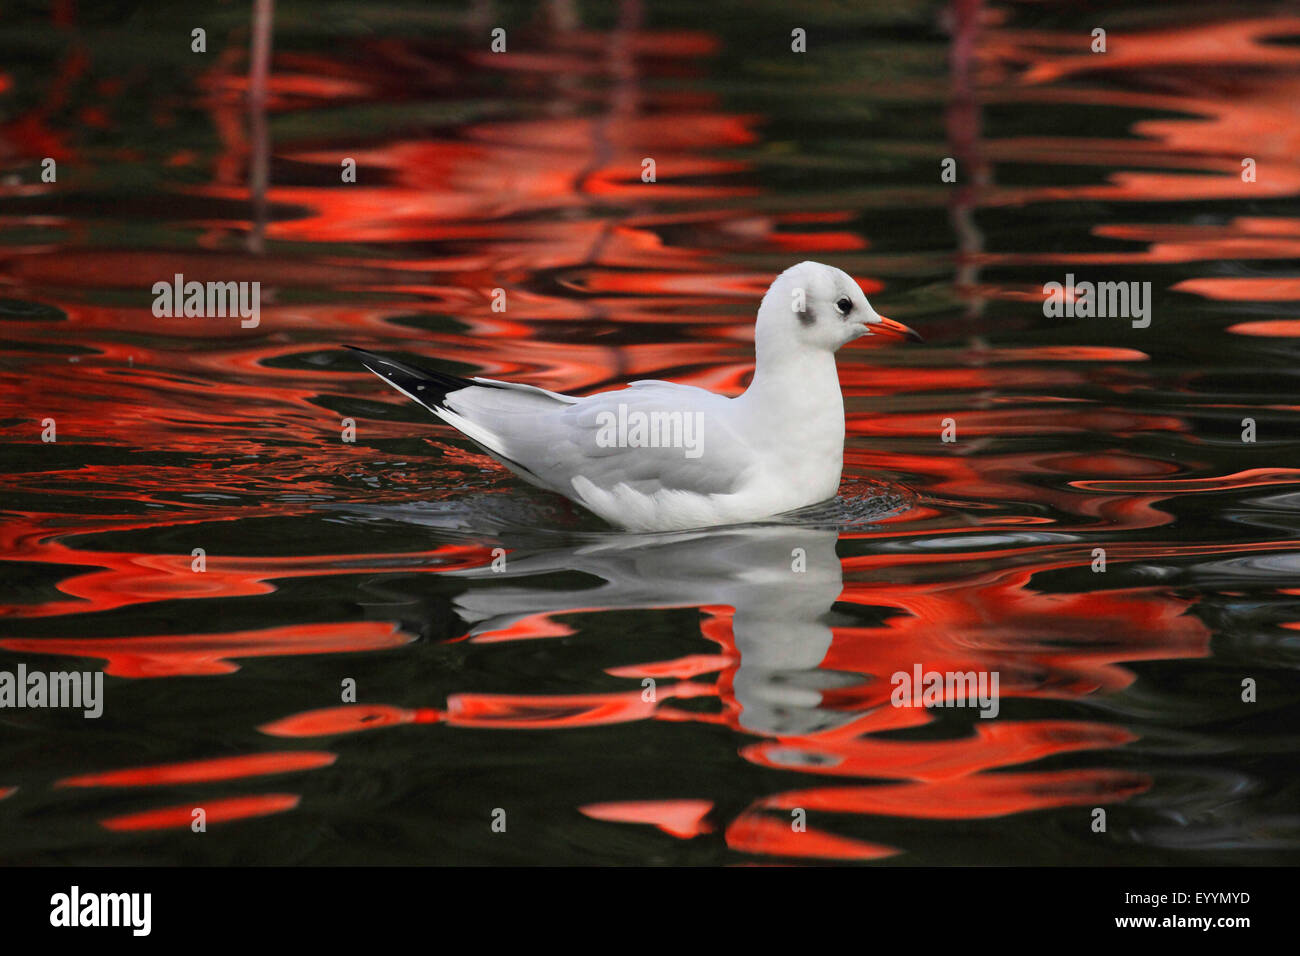 black-headed gull (Larus ridibundus, Chroicocephalus ridibundus), swims in evening light, Germany - Stock Image